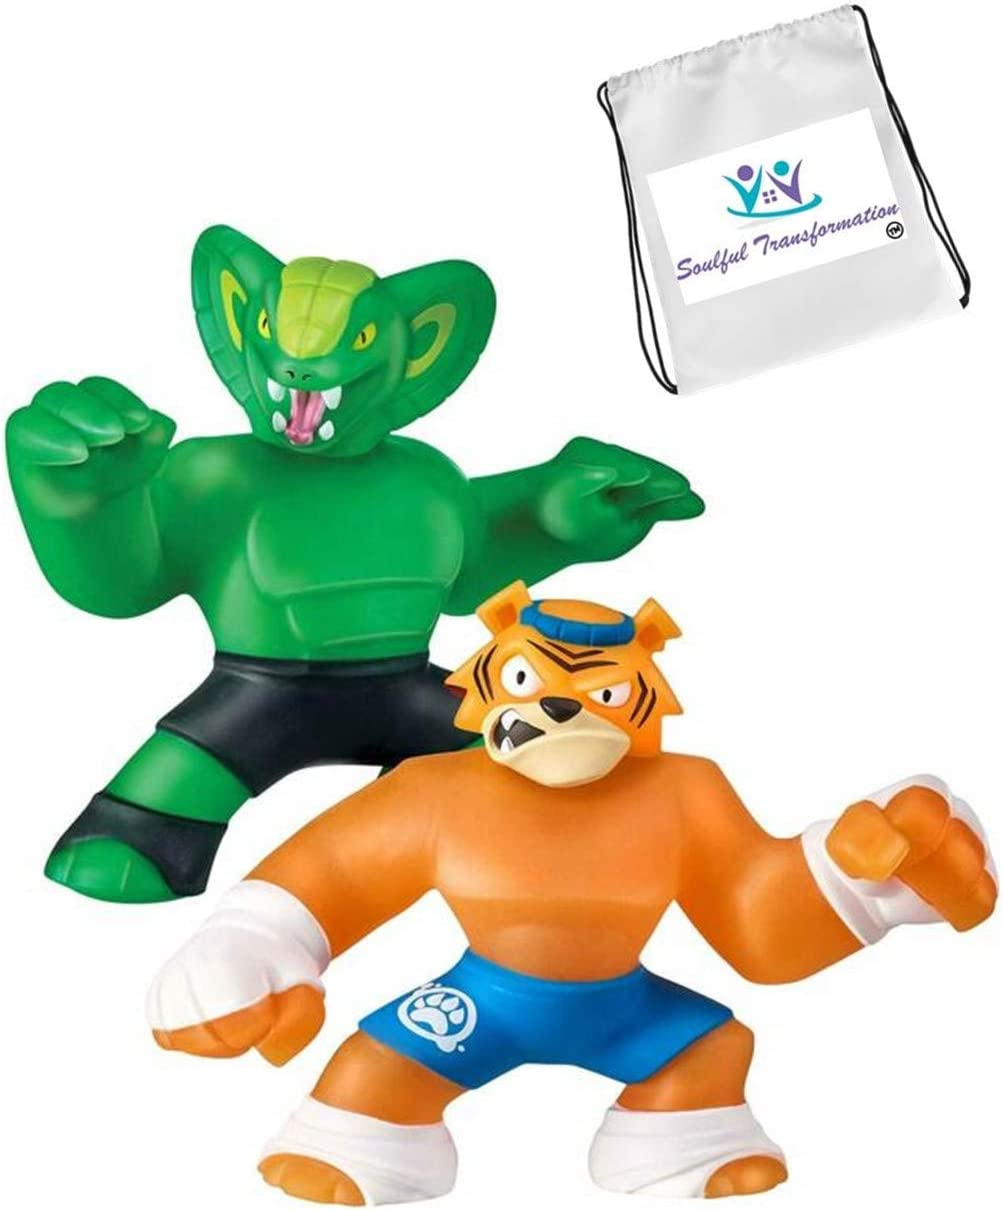 Tygor Versus Viper Heroes of Goo JIT Zu Action Figure (Bonus Exclusive TNT Trinket Bag Loaded with Extra Toys) Boys Girls Playtime and Loads of Fun